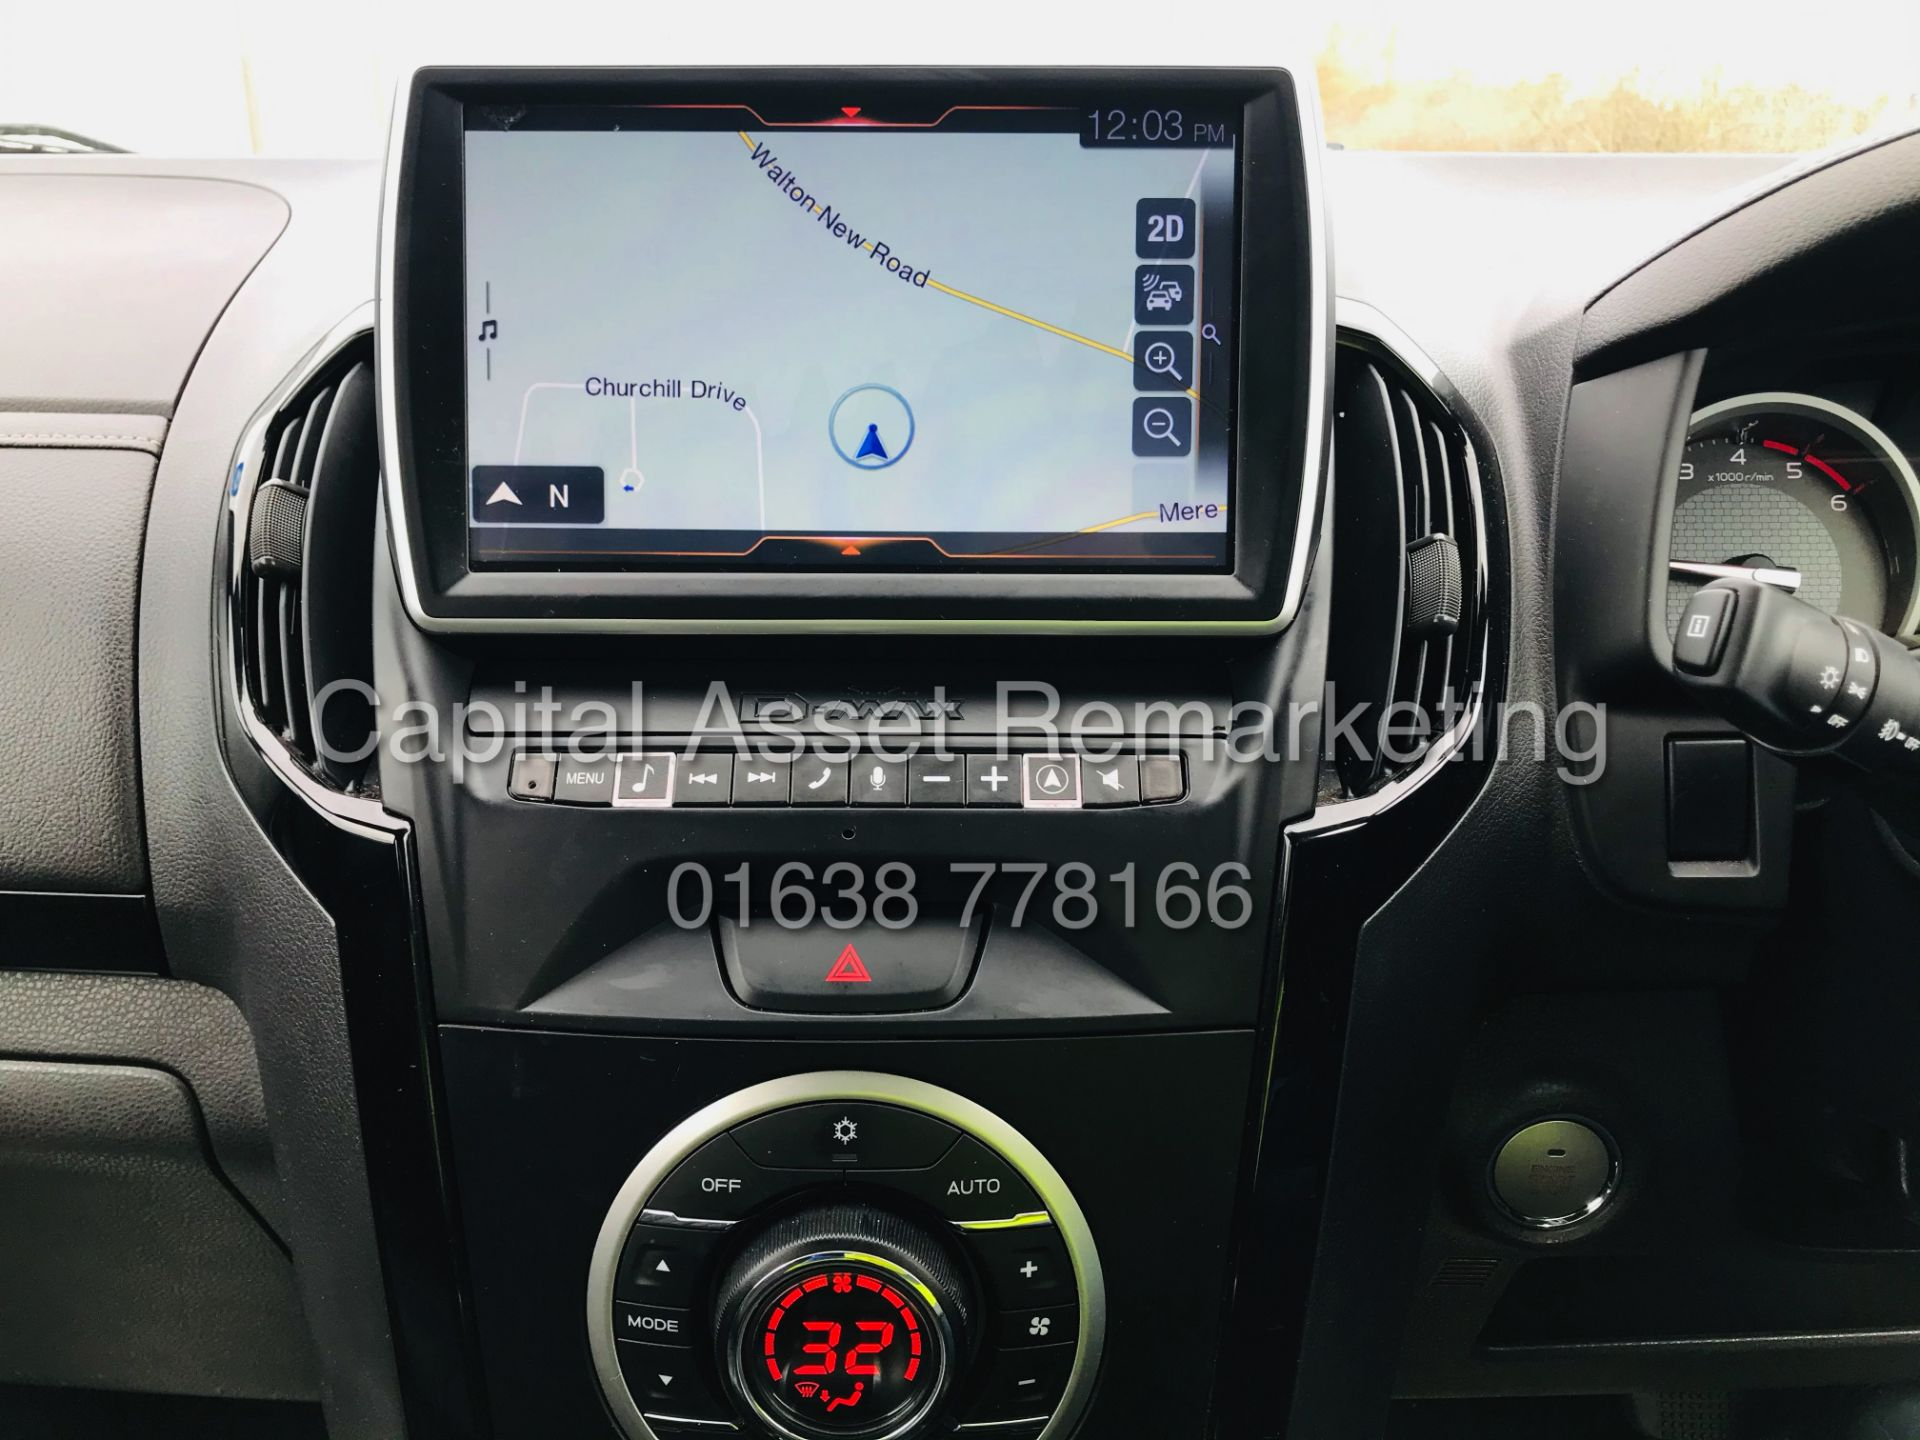 "(On Sale) ISUZU D-MAX ""BLADE"" AUTO - 1 OWNER (2019 - EURO 6) LEATHER - SAT NAV *TOP SPEC* - Image 26 of 34"